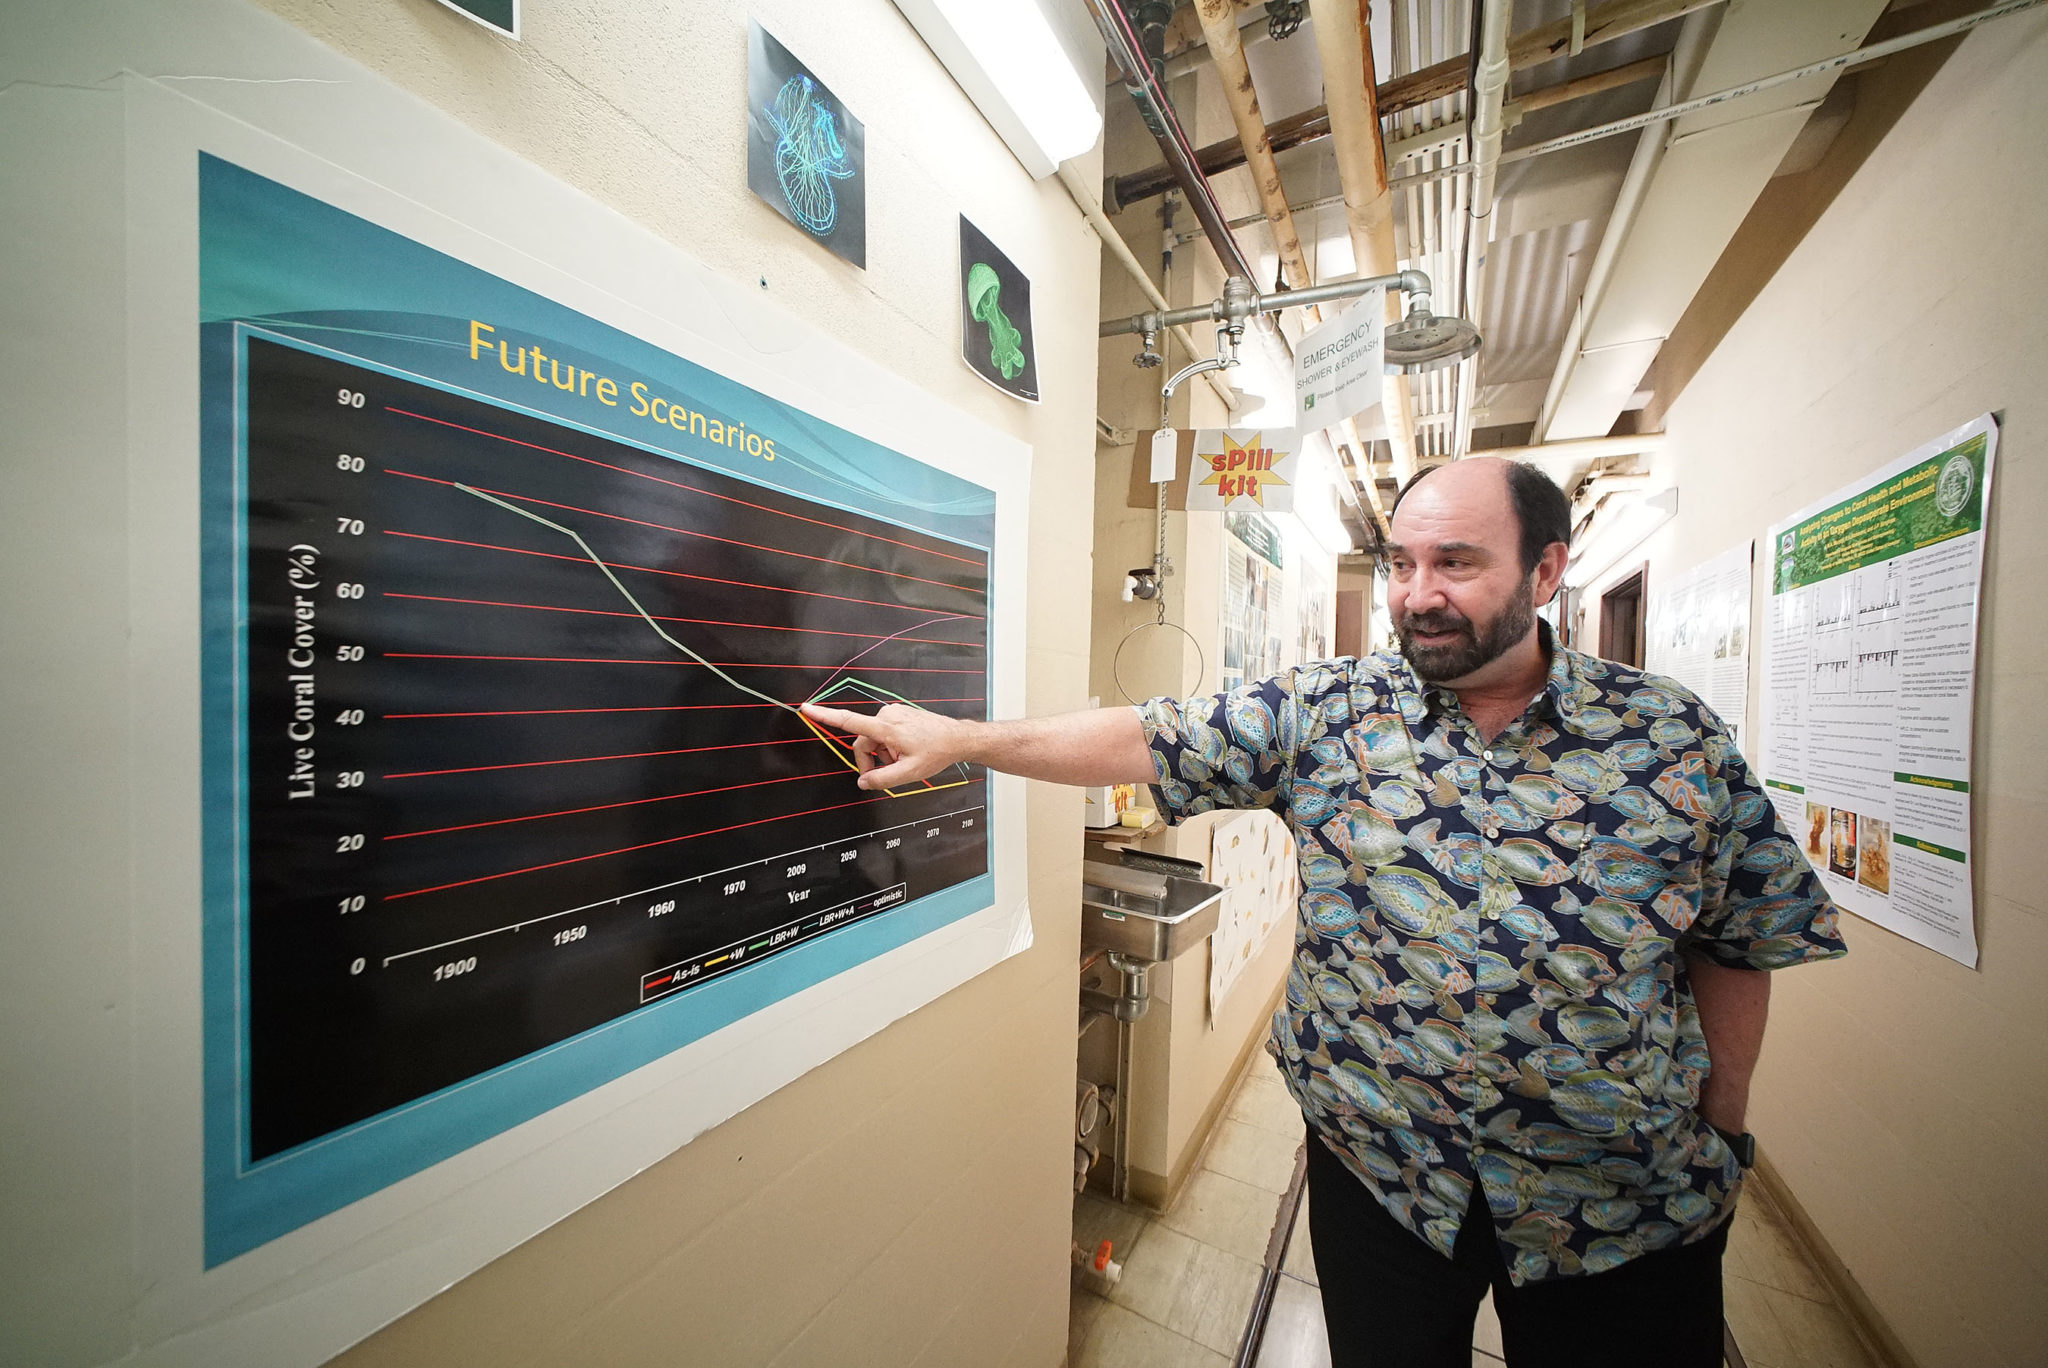 <p>Bob Richmond, who heads the Kewalo Marine Laboratory, explains future scenarios of corals. Unless local stressors like pollution runoff and overfishing are addressed along with the broader issue of climate change, particularly capping carbon emissions to slow global warming, corals may be doomed.</p>